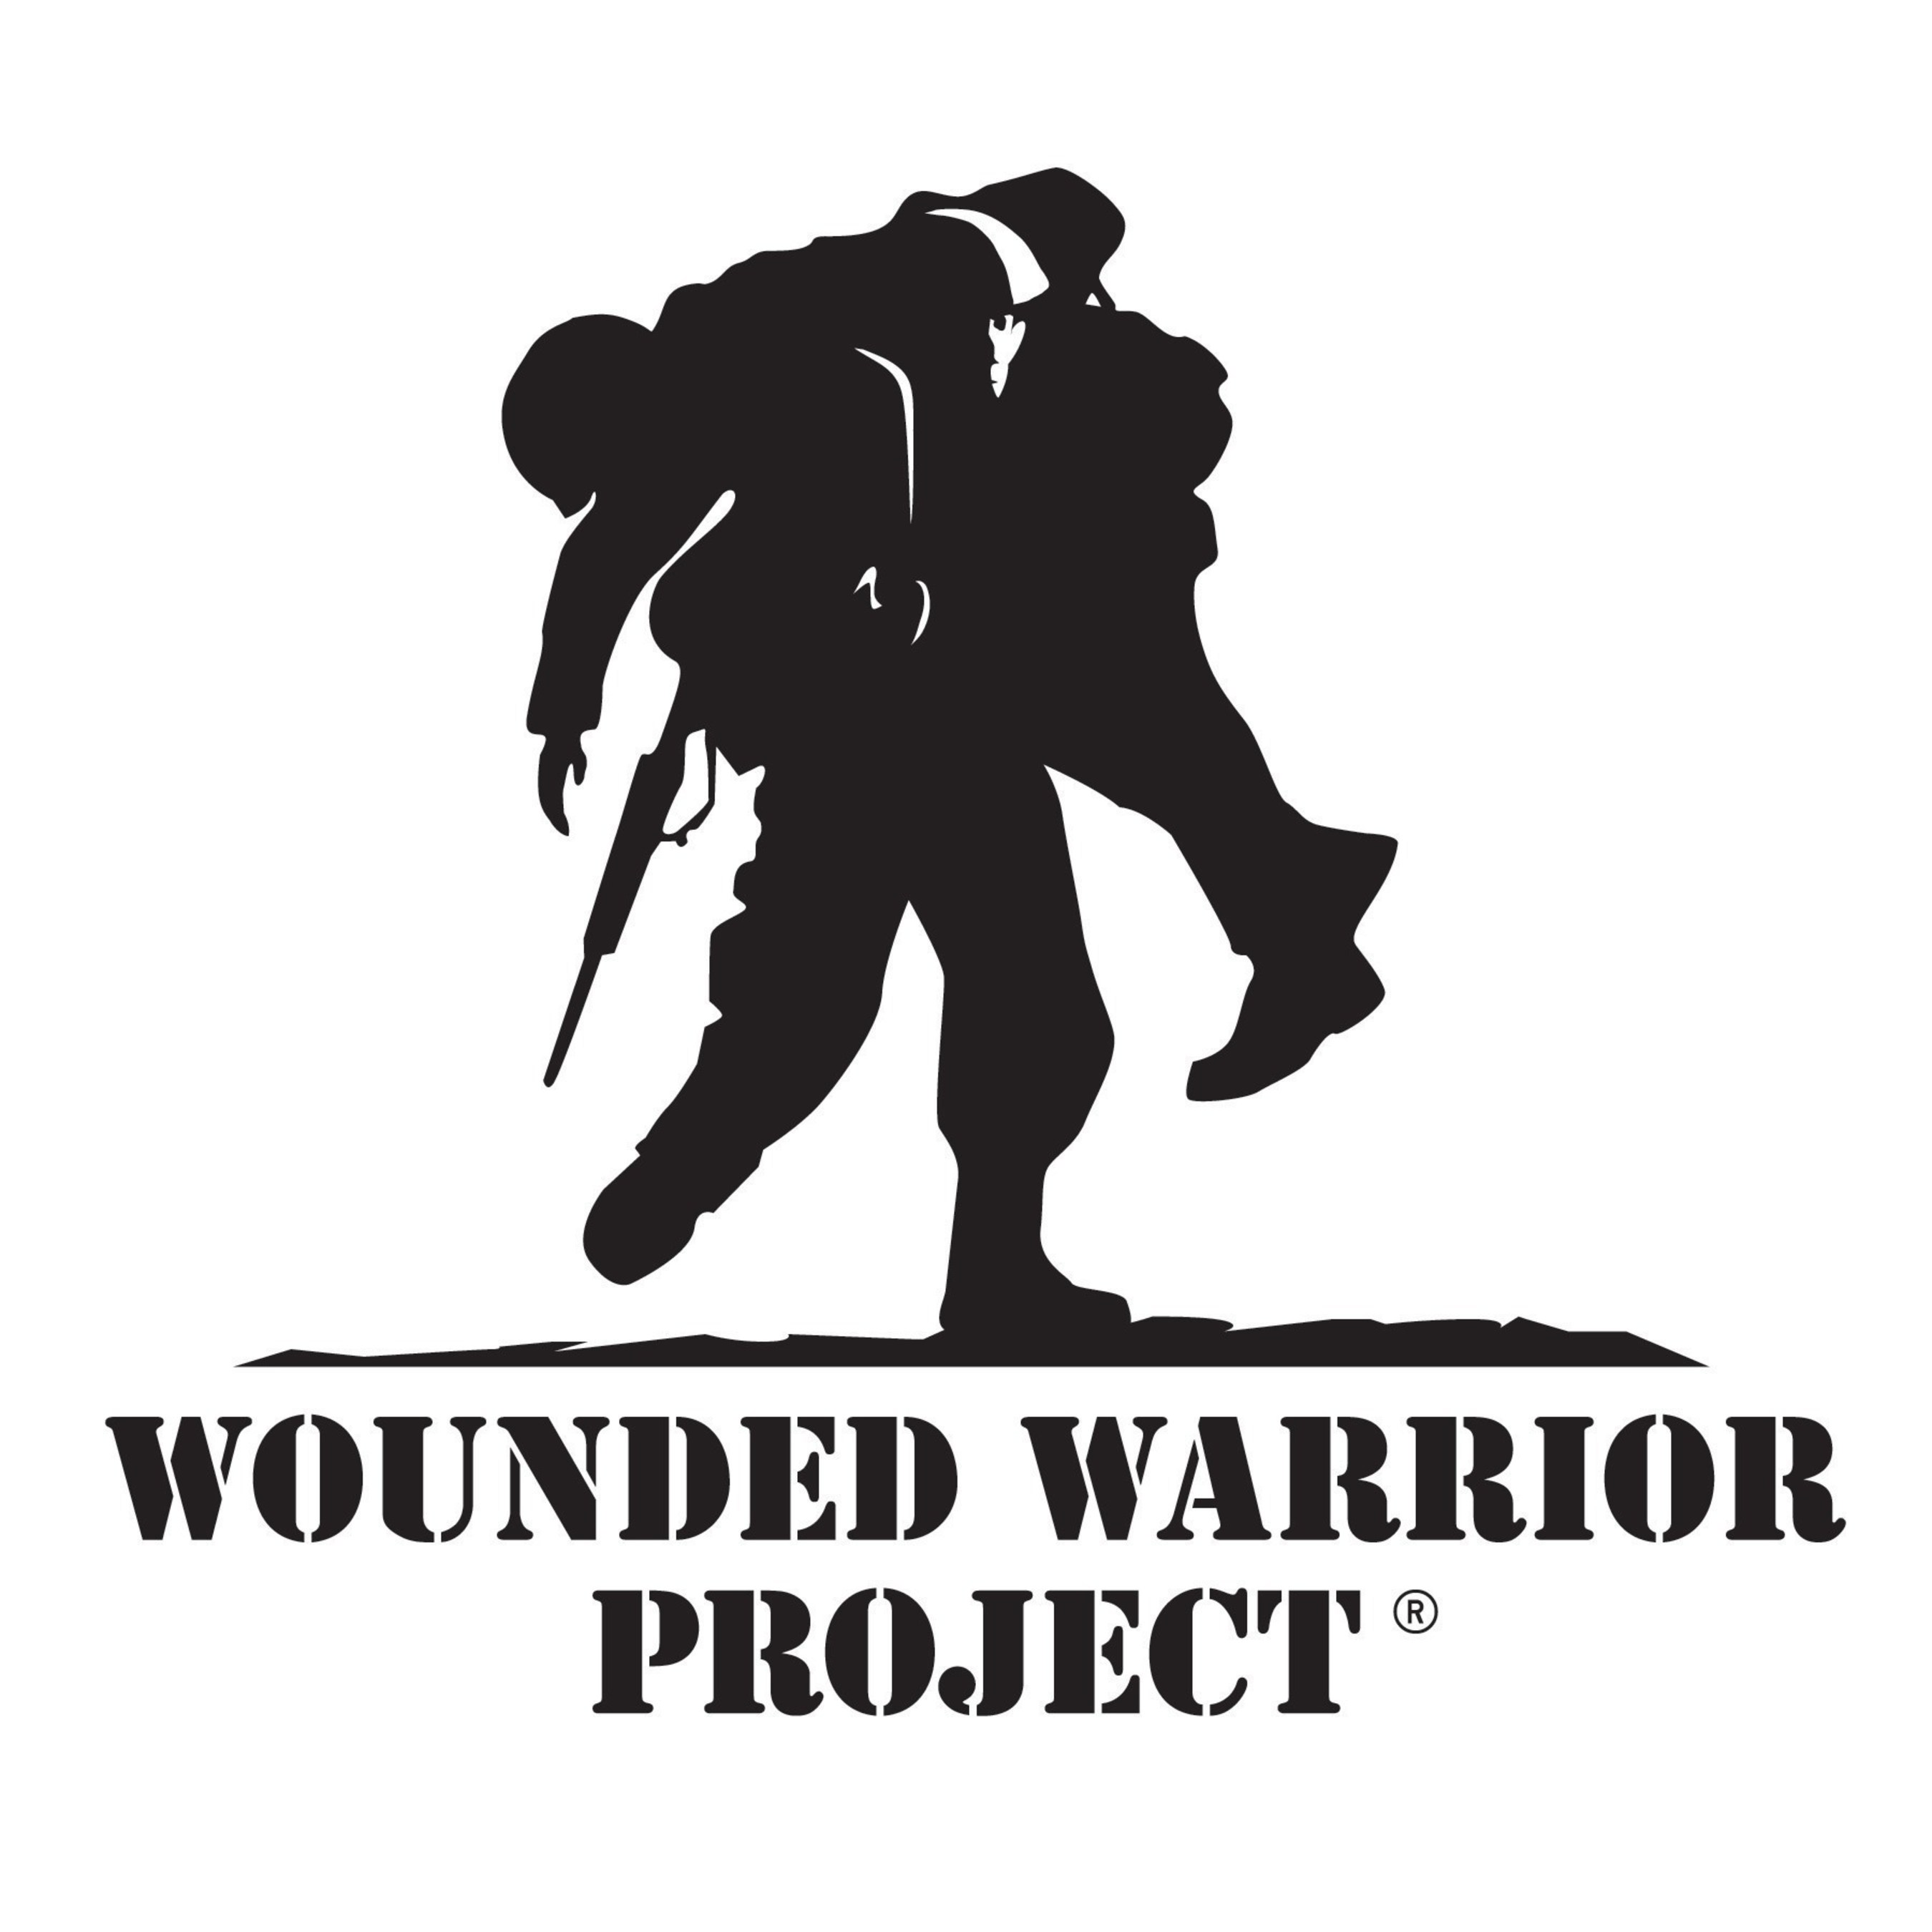 Akamai Partners with Wounded Warrior Project to Improve Web Security